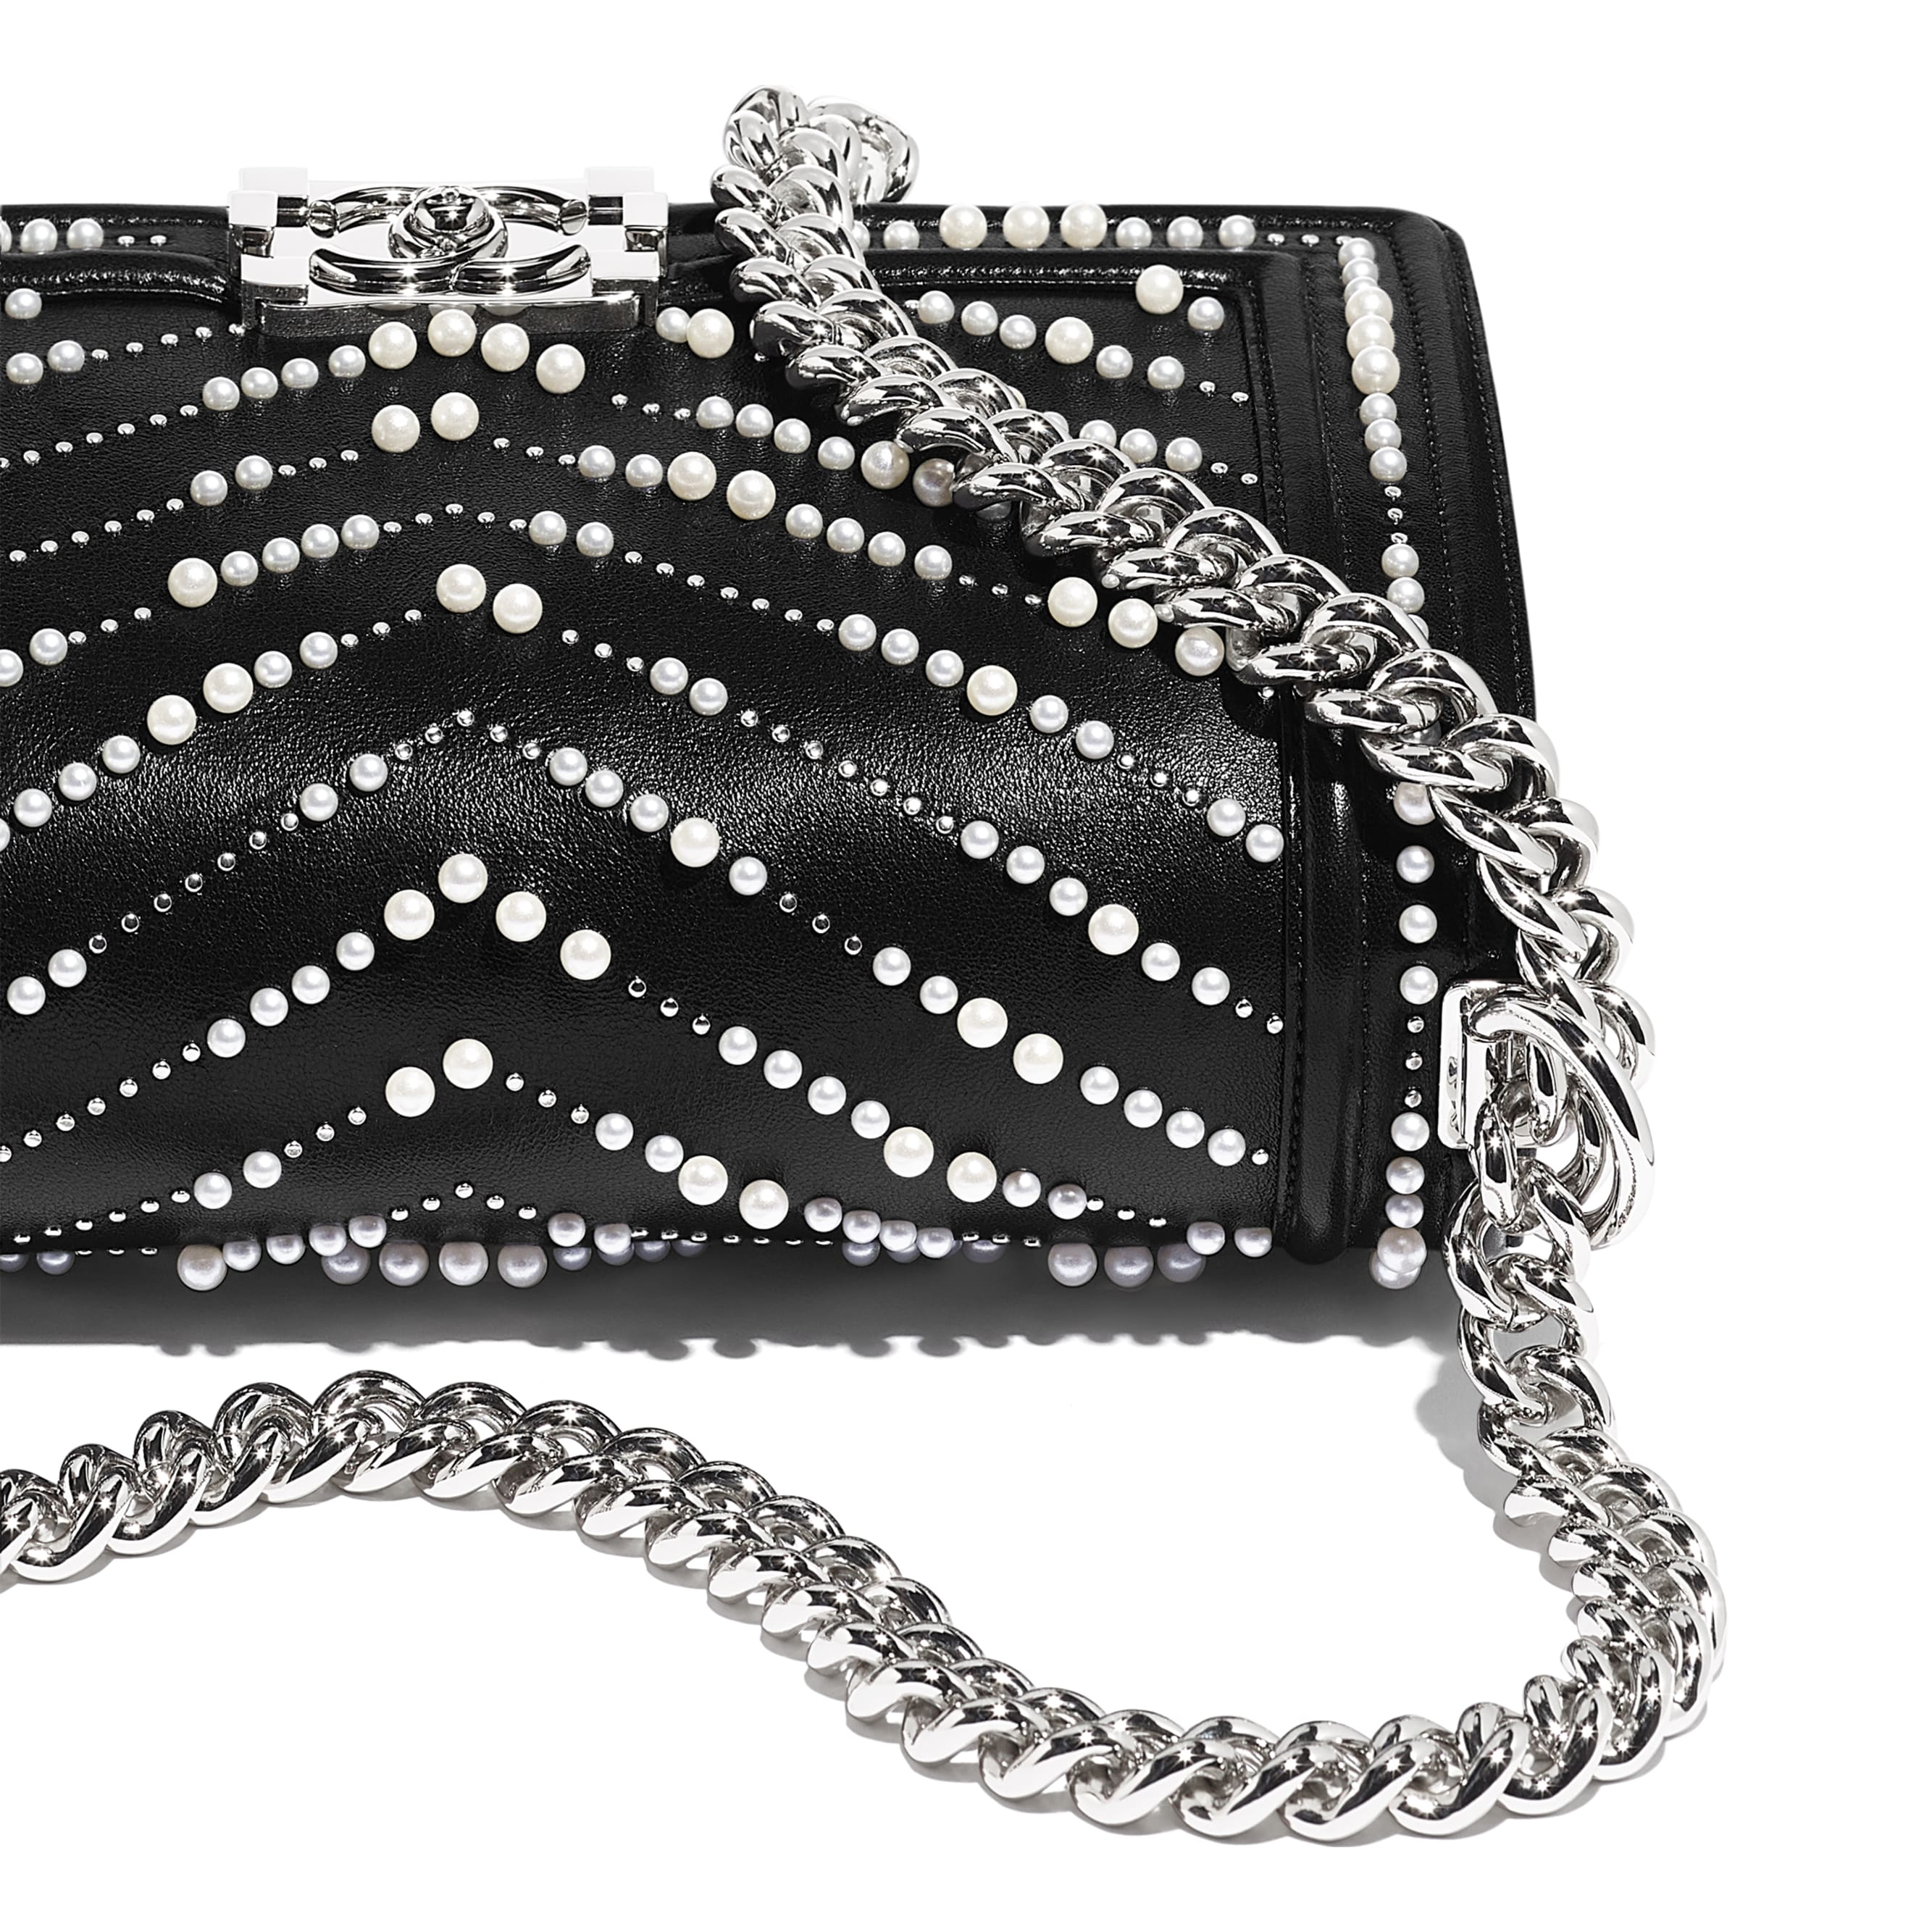 BOY CHANEL Handbag - Black - Calfskin, Imitation Pearls & Silver-Tone Metal - CHANEL - Extra view - see standard sized version